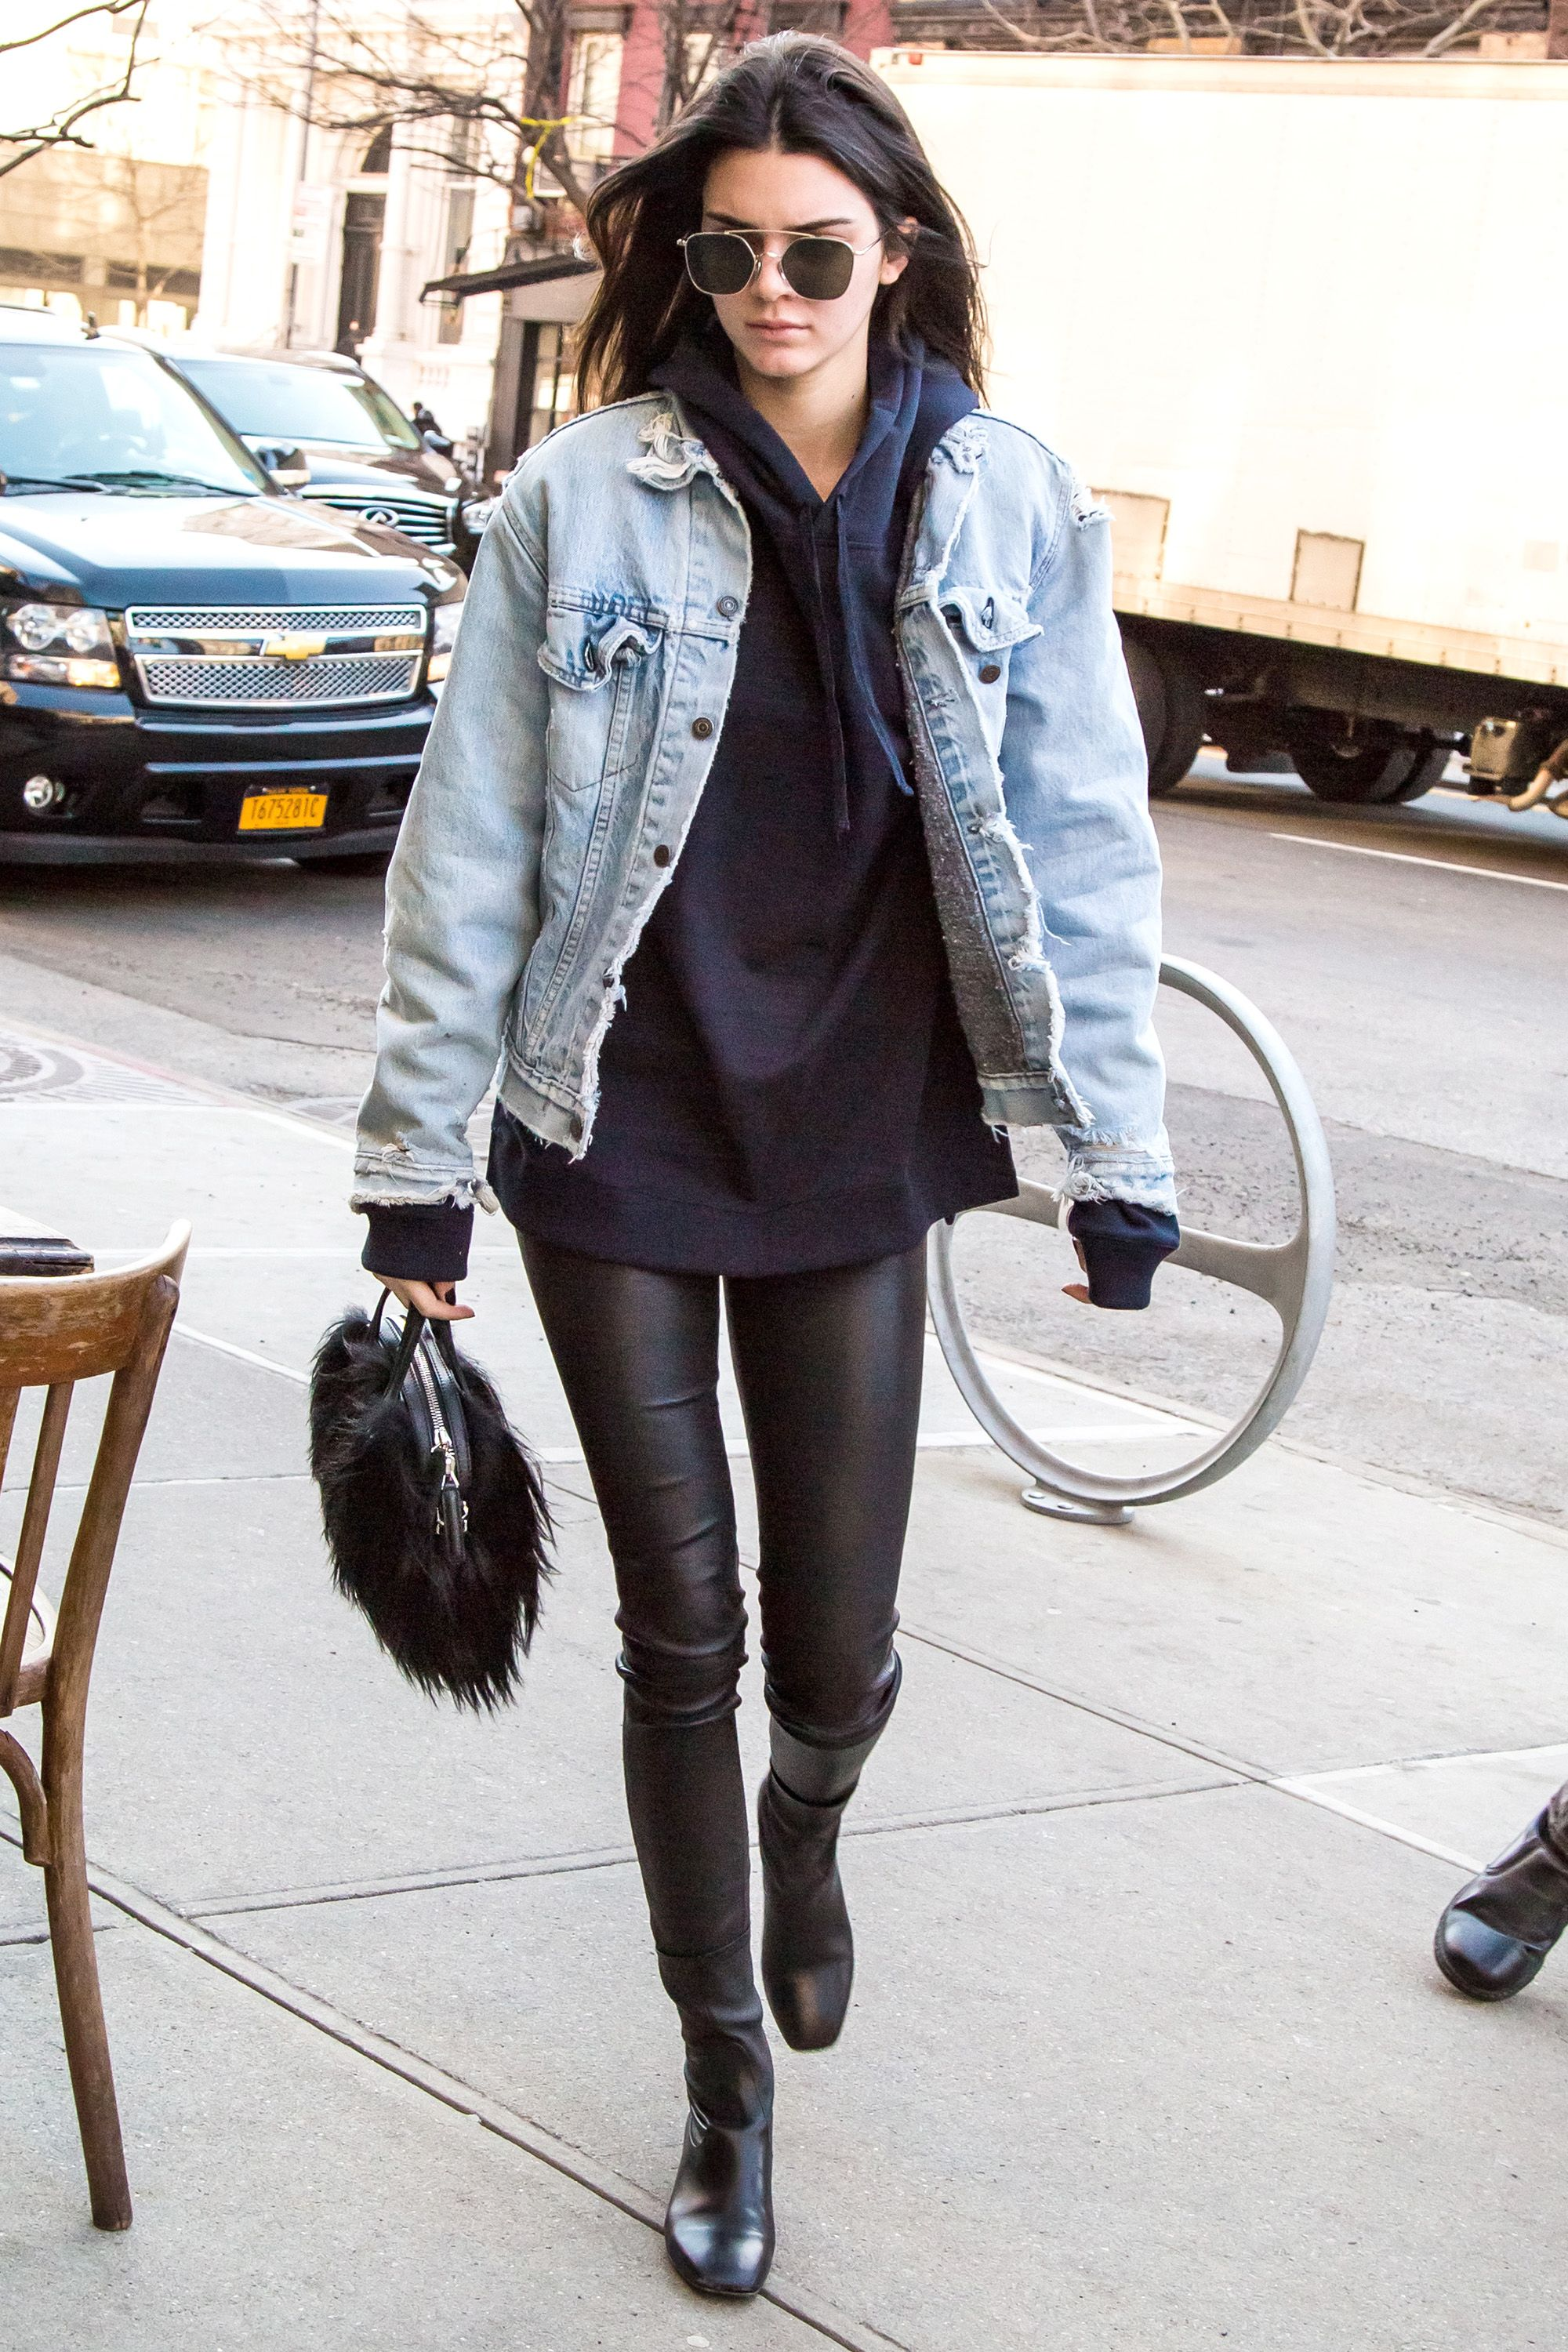 b34a2ec594d7 Kendall Jenner s Shoes Make the Tank Top and Shorts Combo Look Chic  Oversized Denim Jacket Outfit